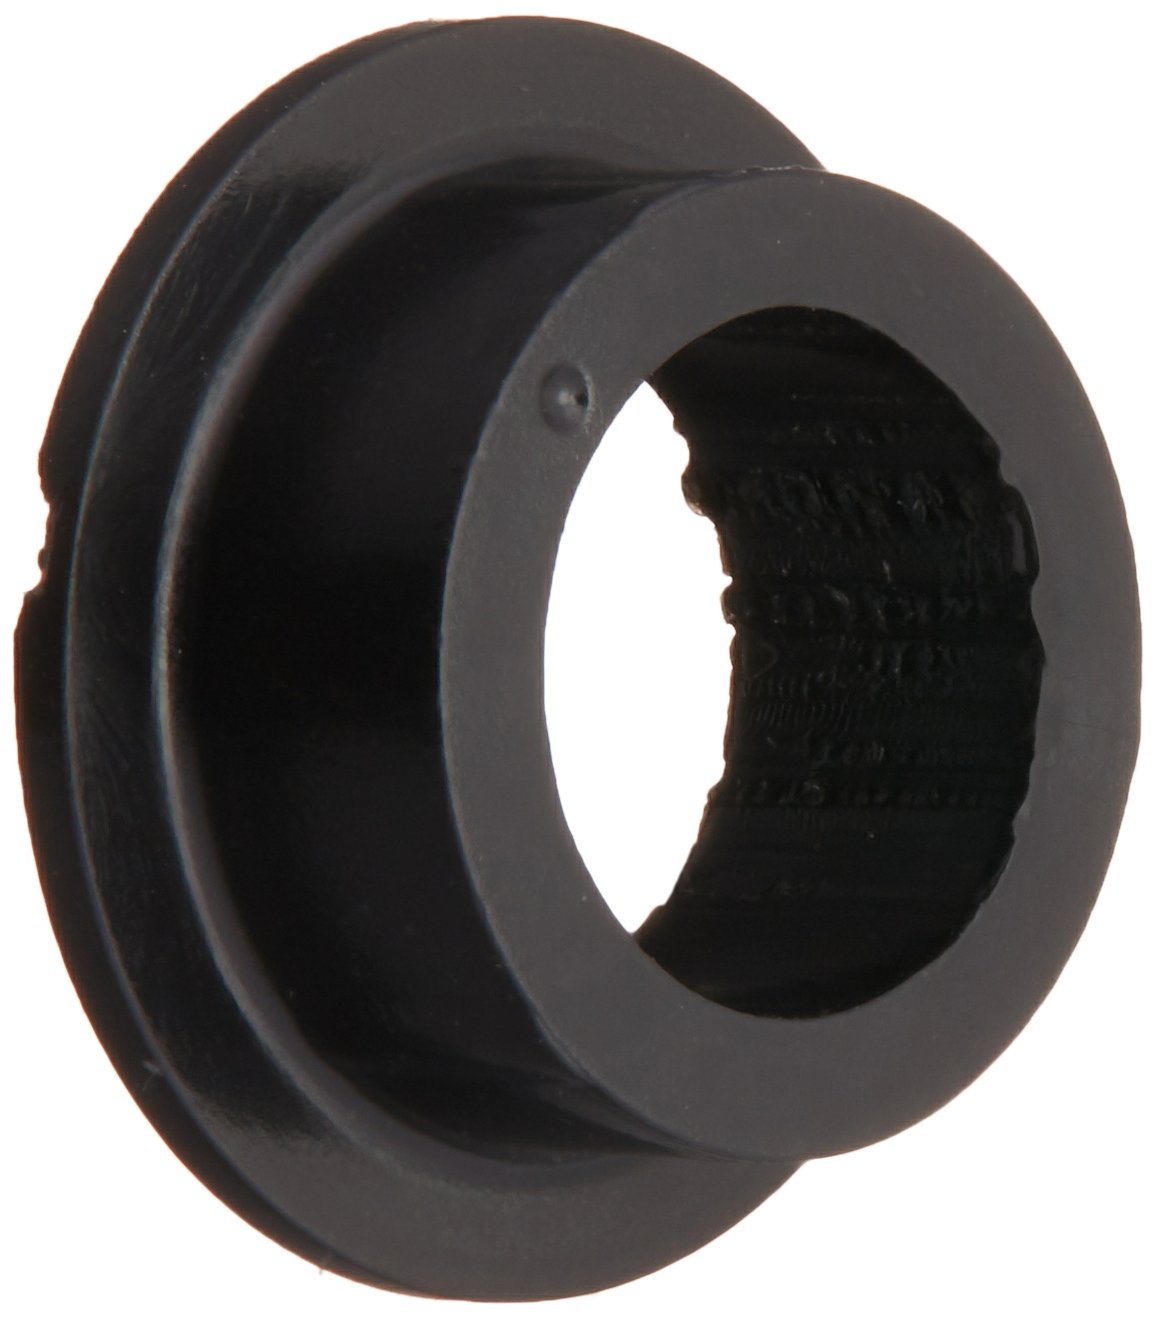 Norcold Inc. Refrigerators 618144 Black Door Hinge Bushing